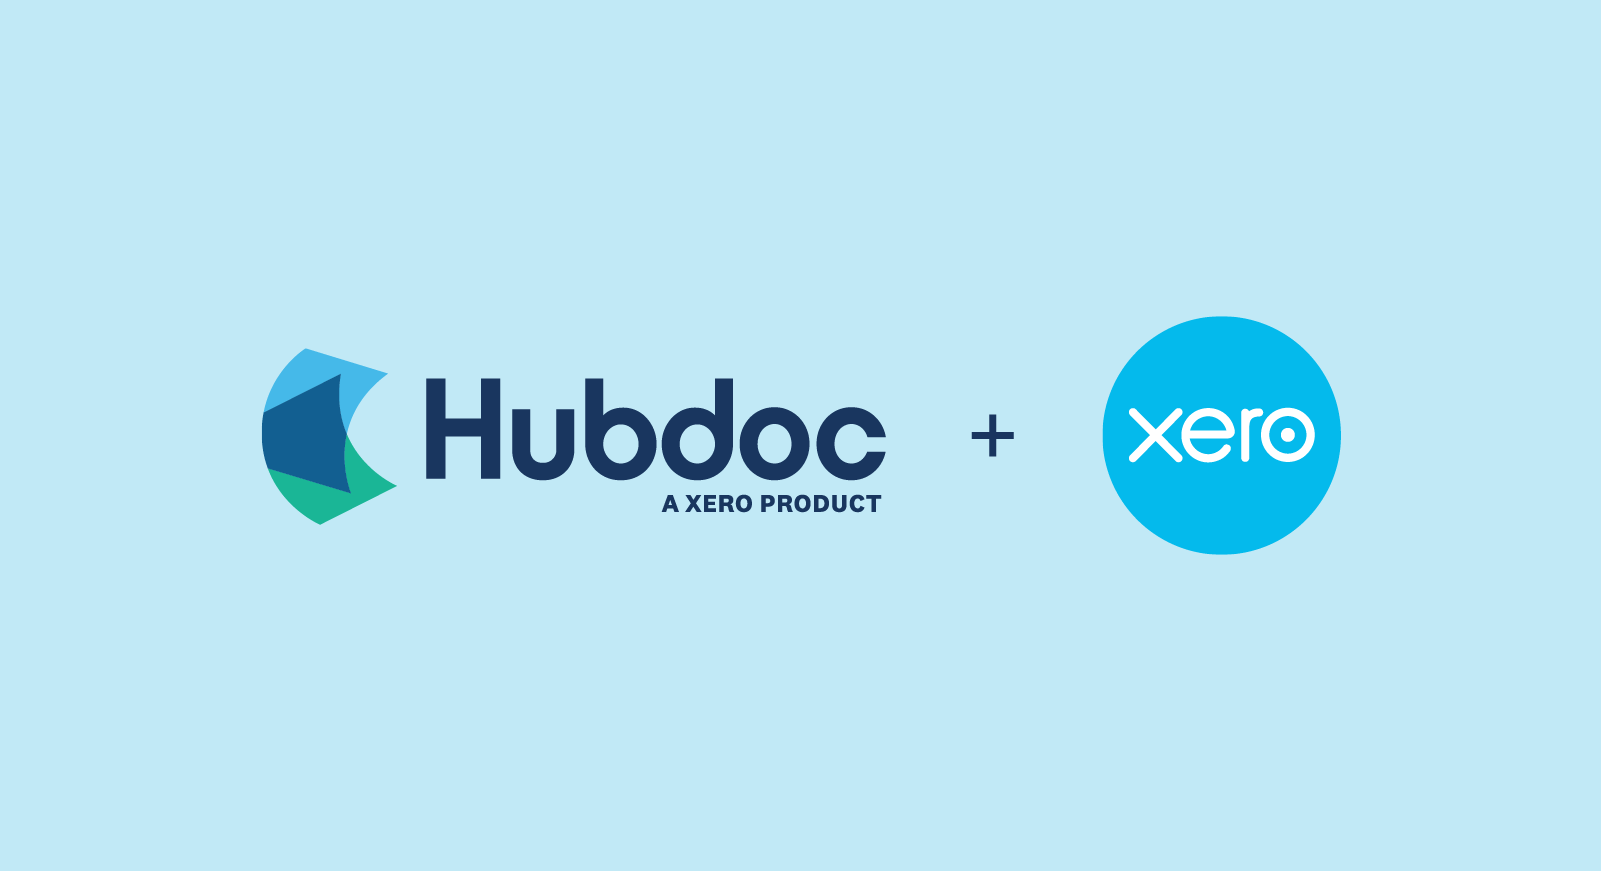 Hubdoc to be included in select Xero plans in March 2020